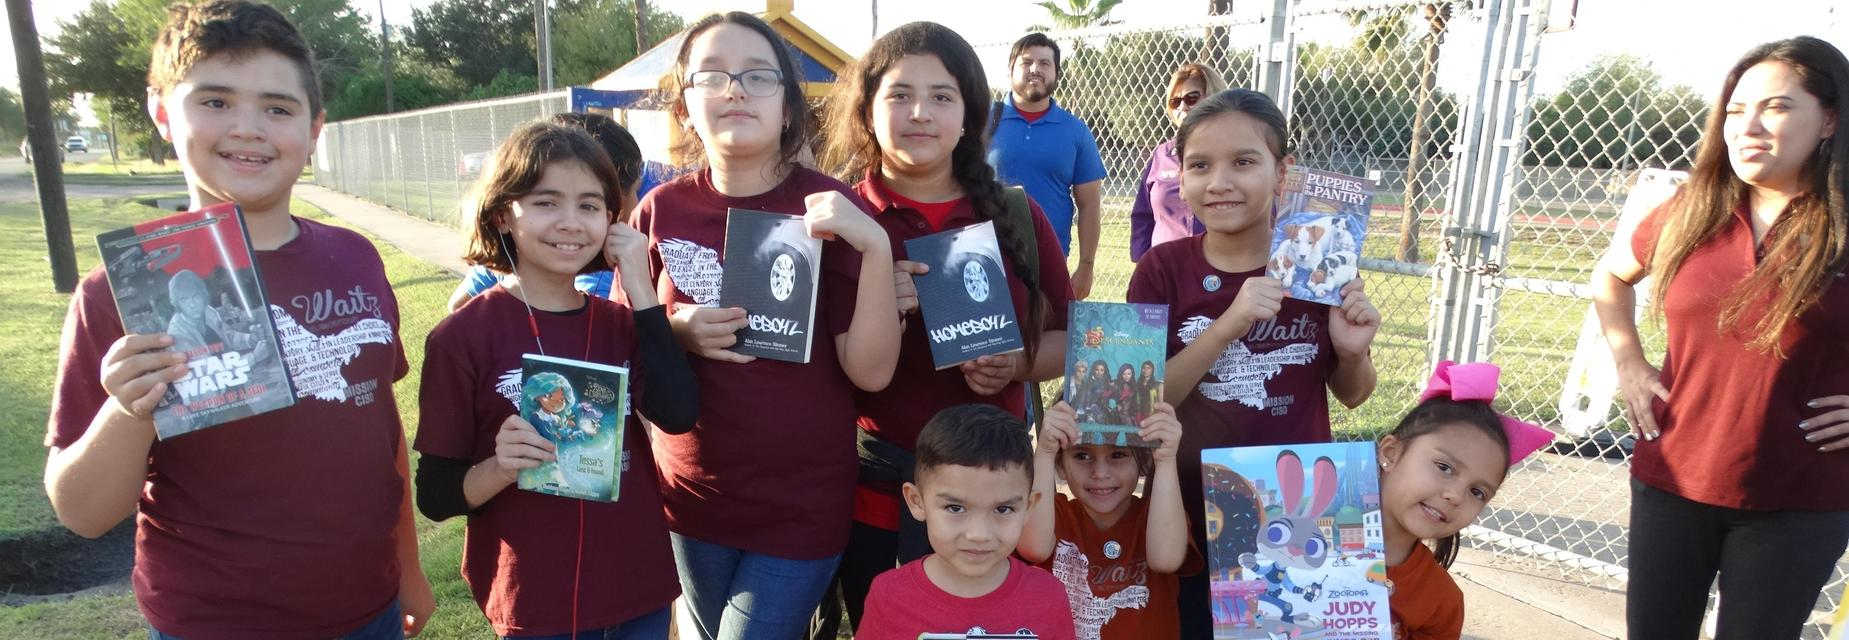 Waitz students at Little Library ribbon cutting ceremony